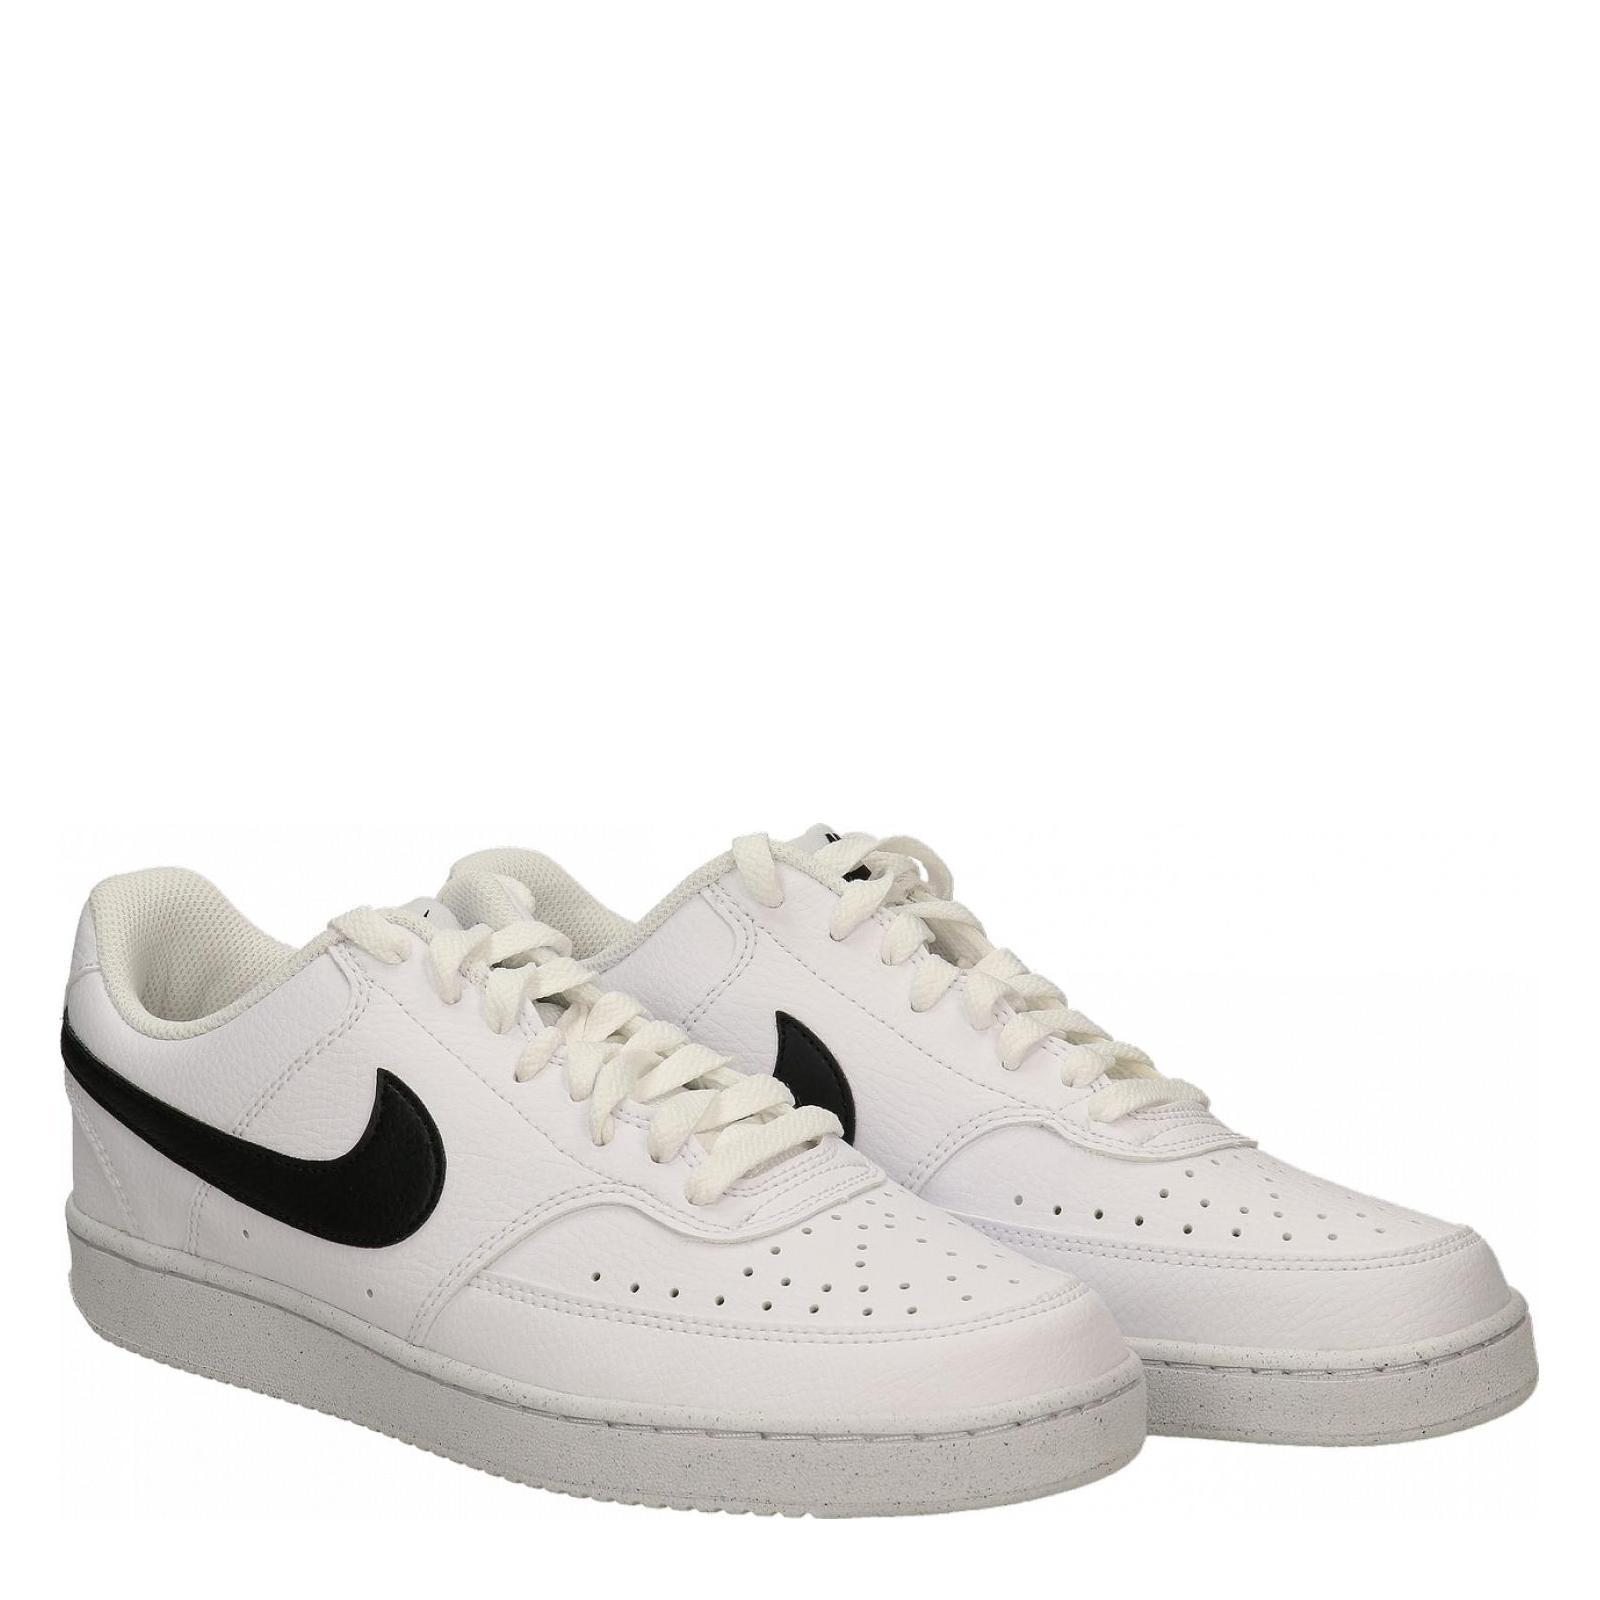 NIKE COURT VISION LO BE